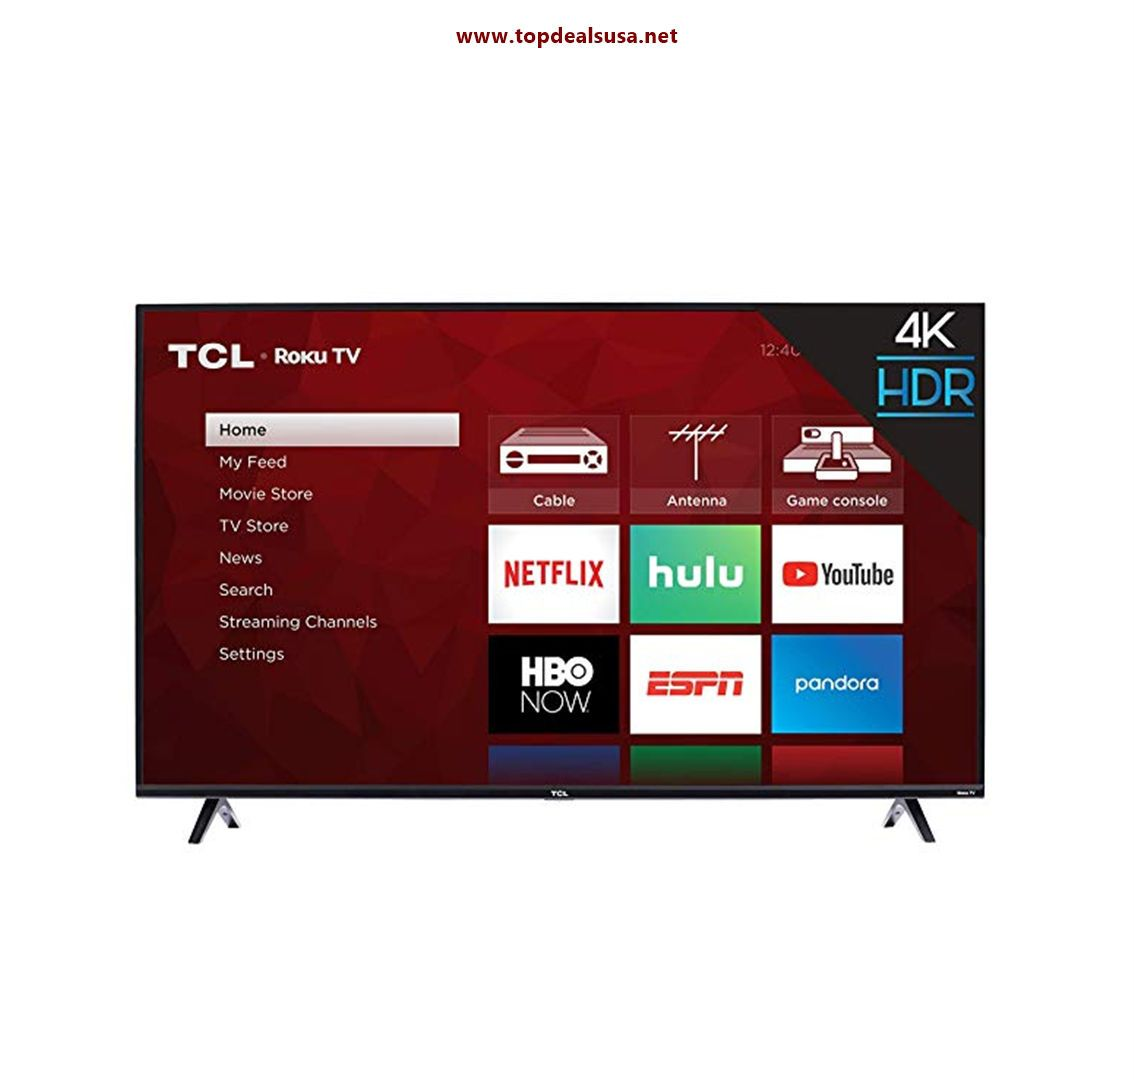 4k TV Deals (With images) Tv deals, 4k tv